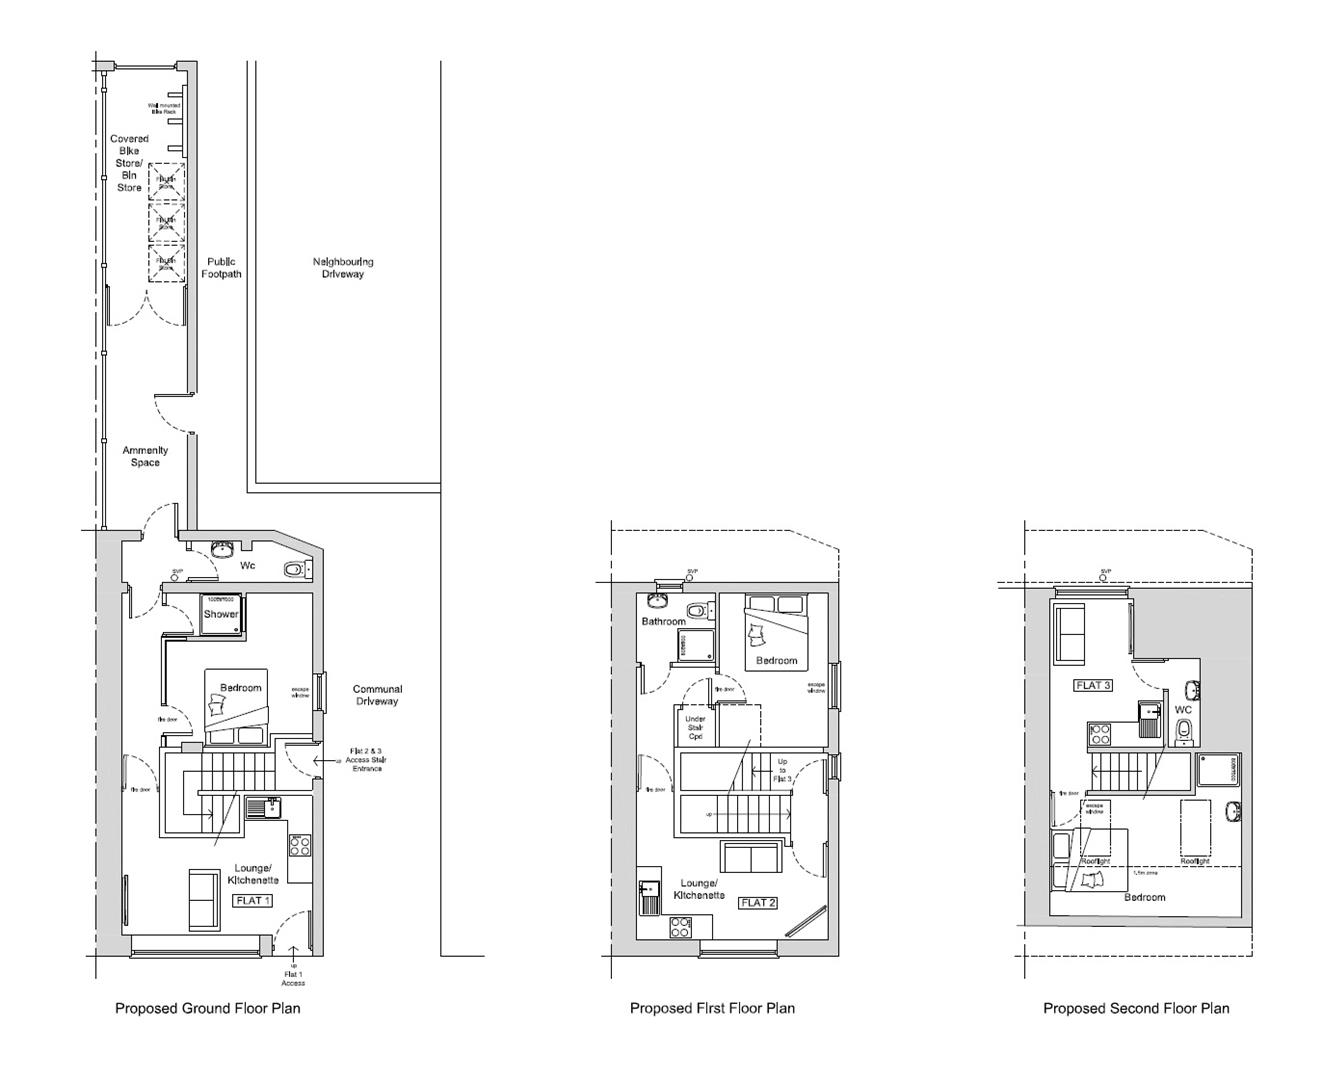 Images for PLANNING GRANTED - 3 FLATS EAID:hollismoapi BID:11